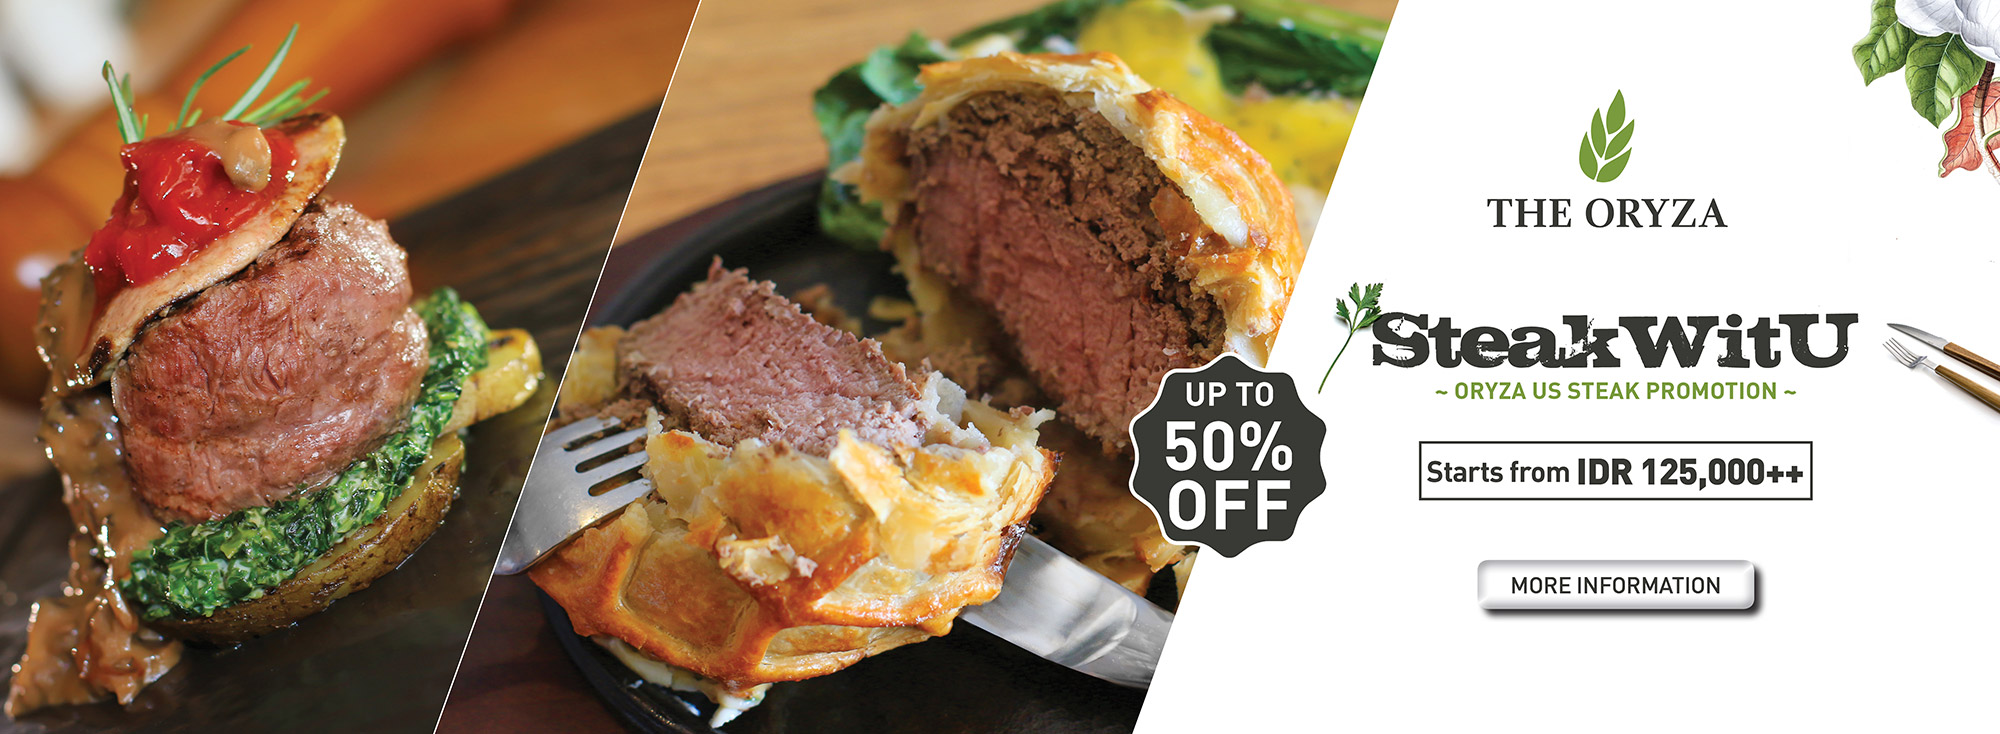 Oryza US Steak Promotion